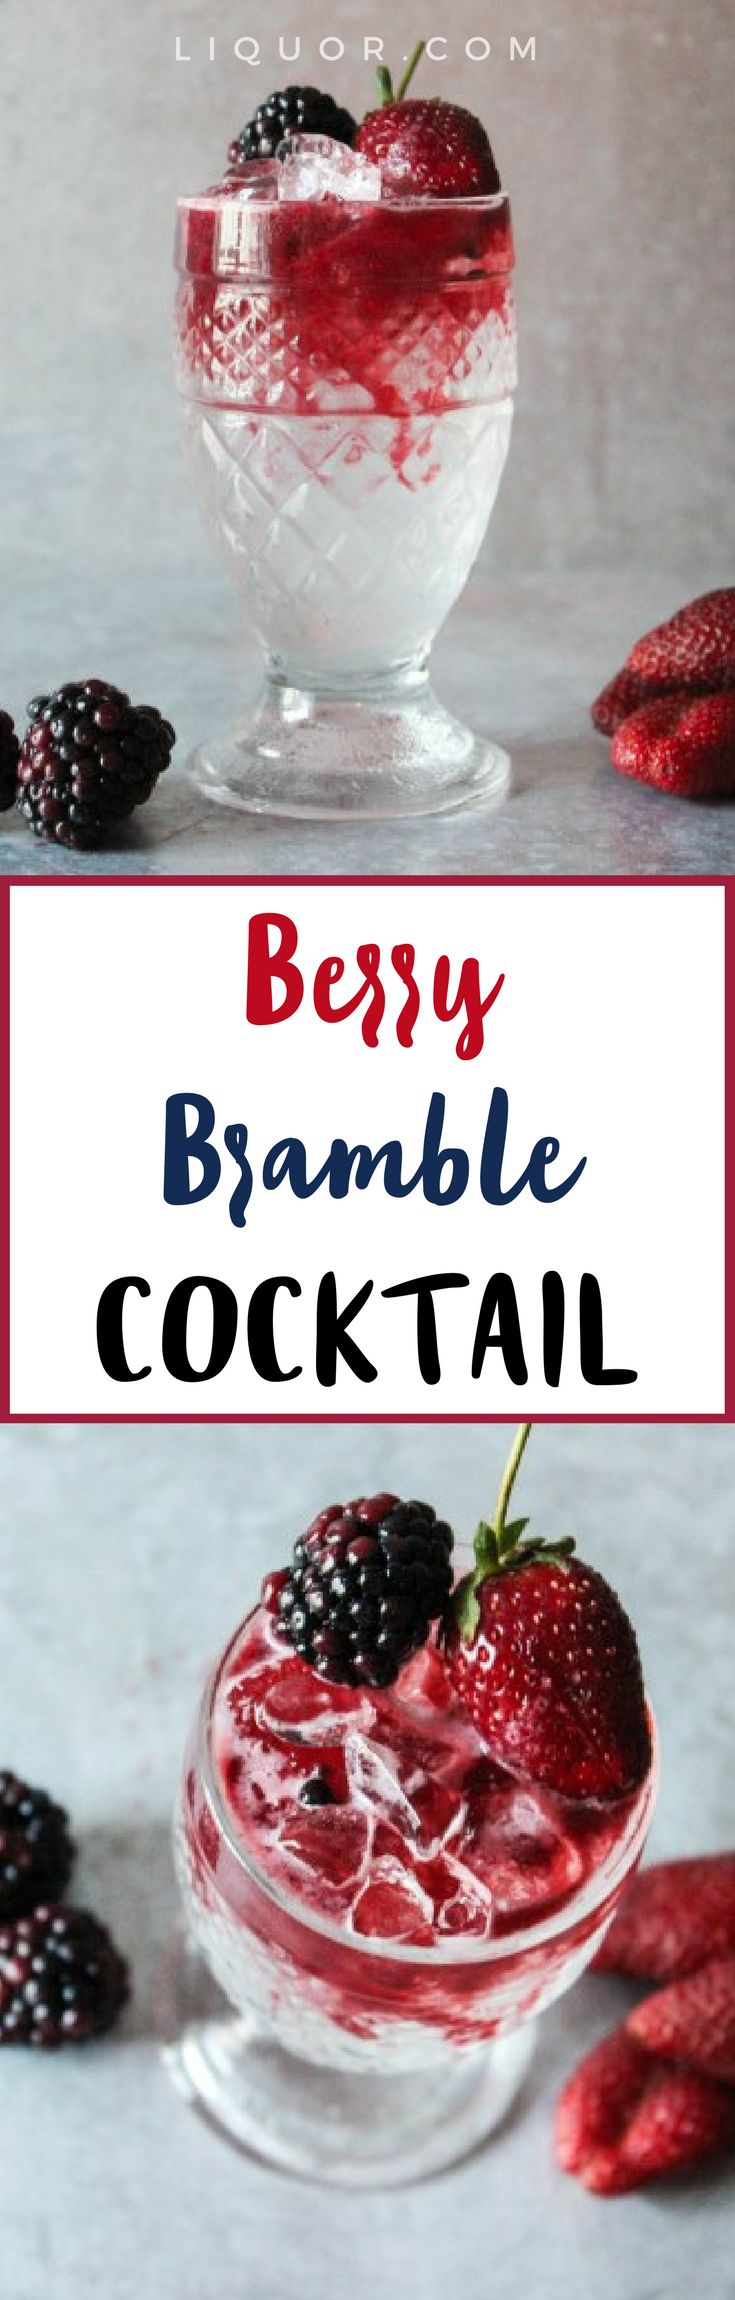 We're obsessed with this #berry #cocktail that's perfect for #Spring and #Summer.